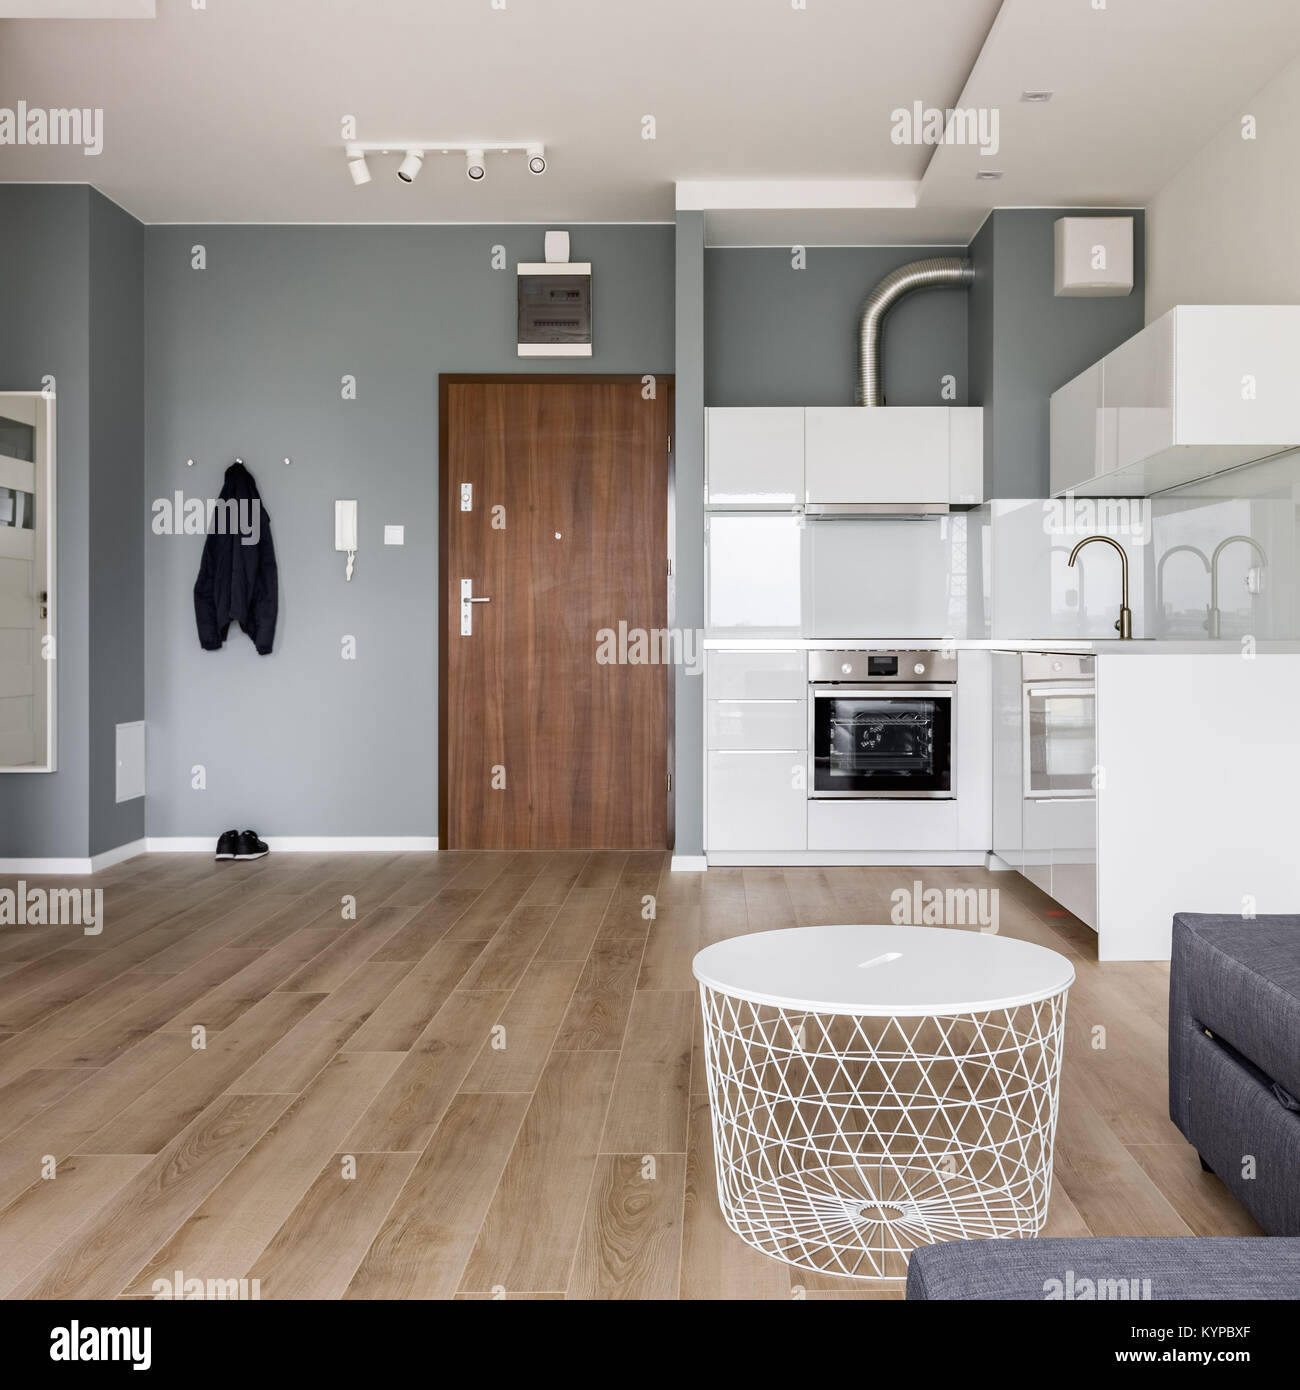 Modern Studio Flat With Small White Kitchen Corridor And Living Stock Photo Alamy